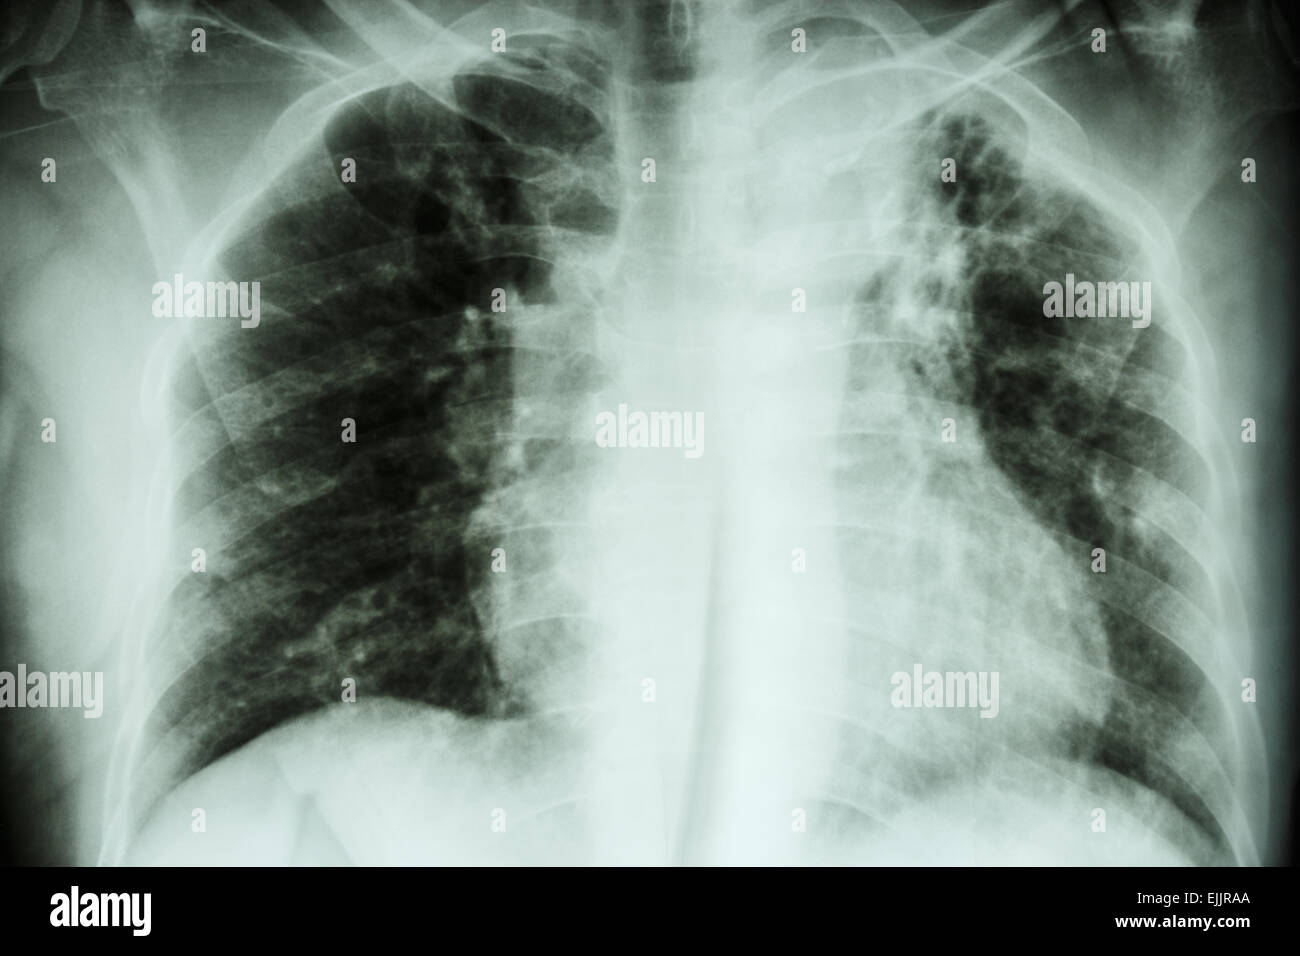 Pulmonary Tuberculosis .  Chest X-ray : interstitial infiltration at left upper lung due to Mycobacterium Tuberculosis Stock Photo